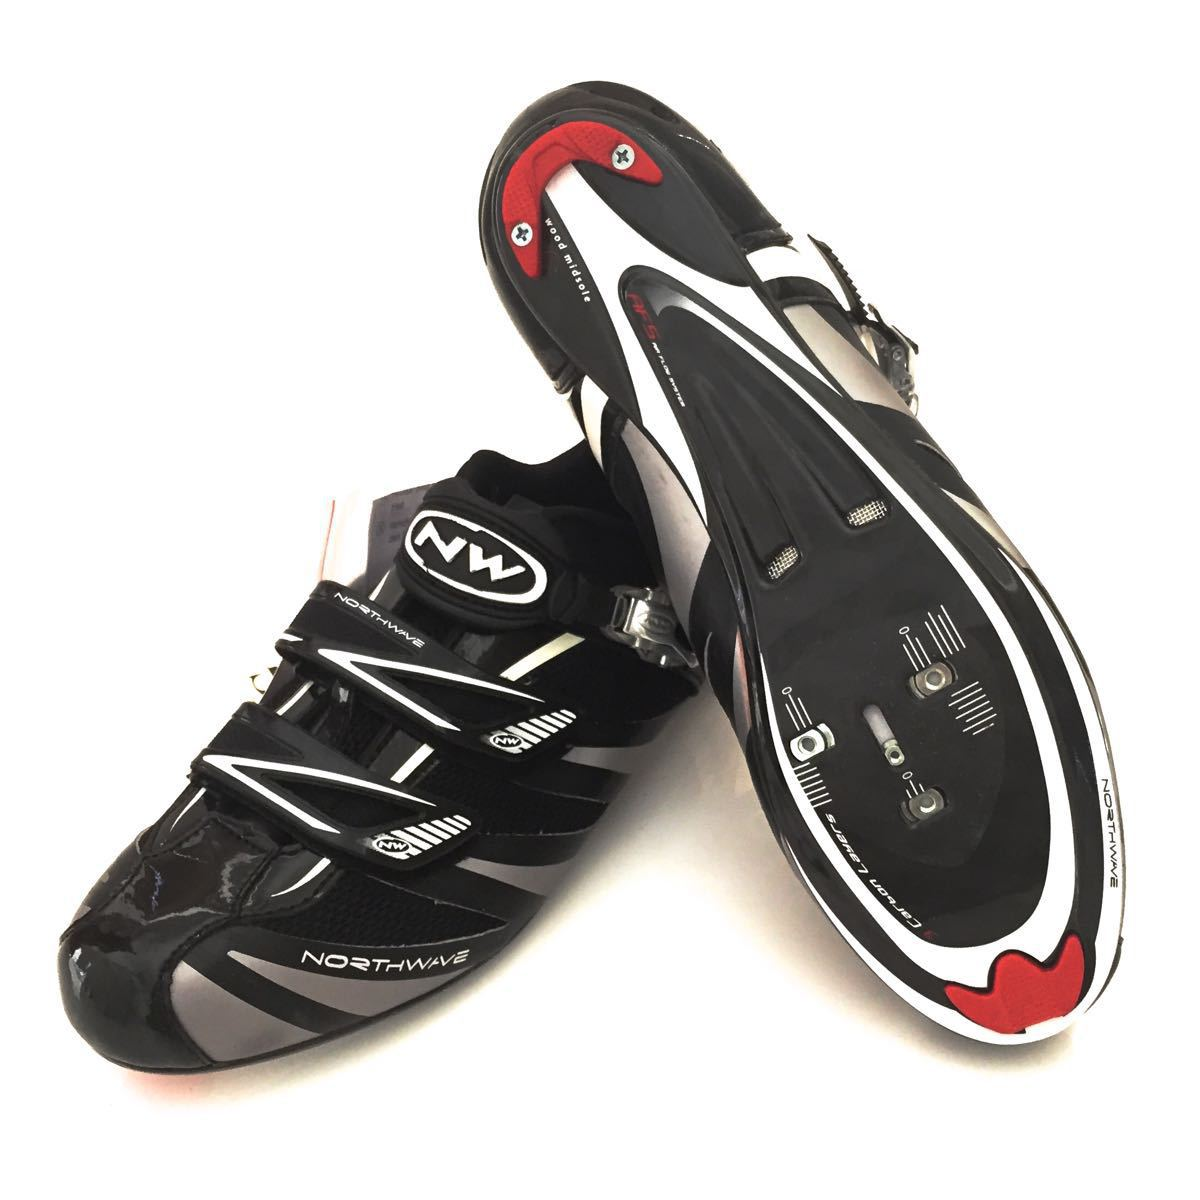 northwave evolution sbs mens road cycling shoe black